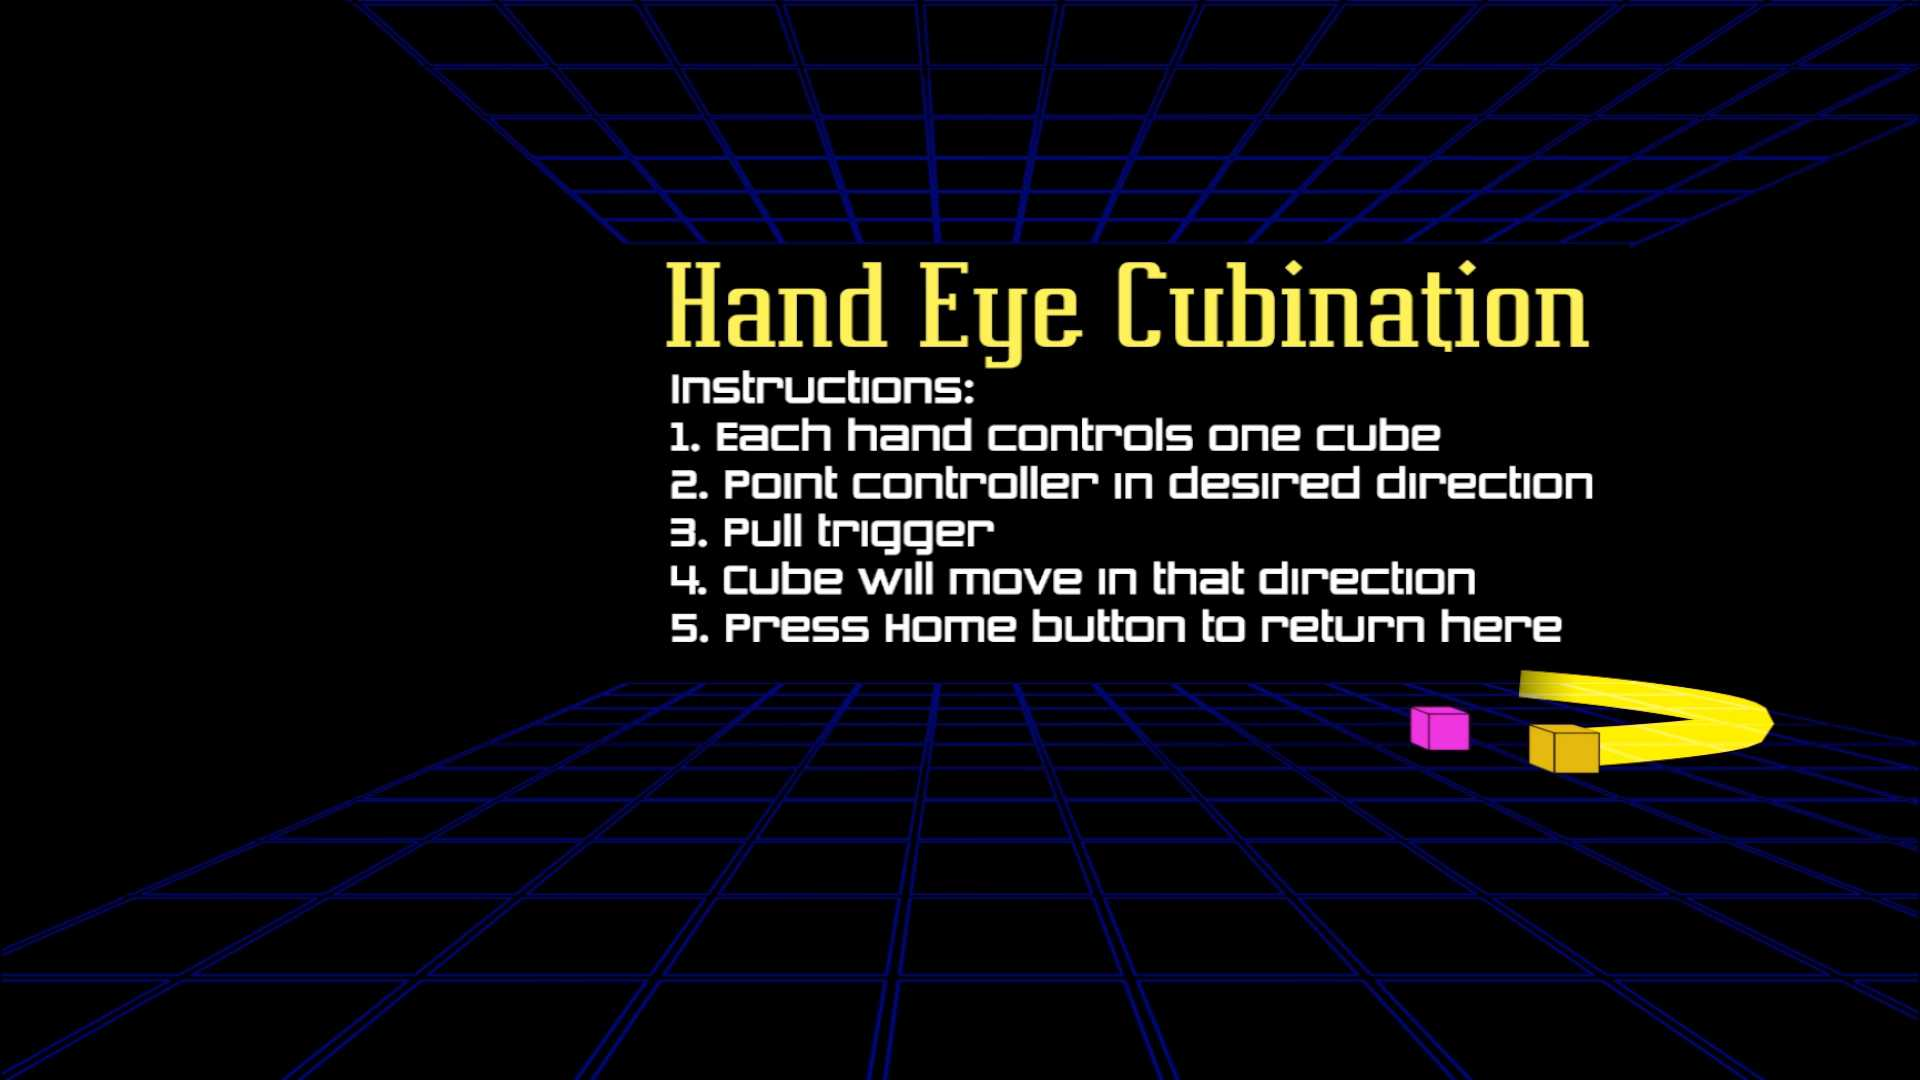 Hand Eye Cubination